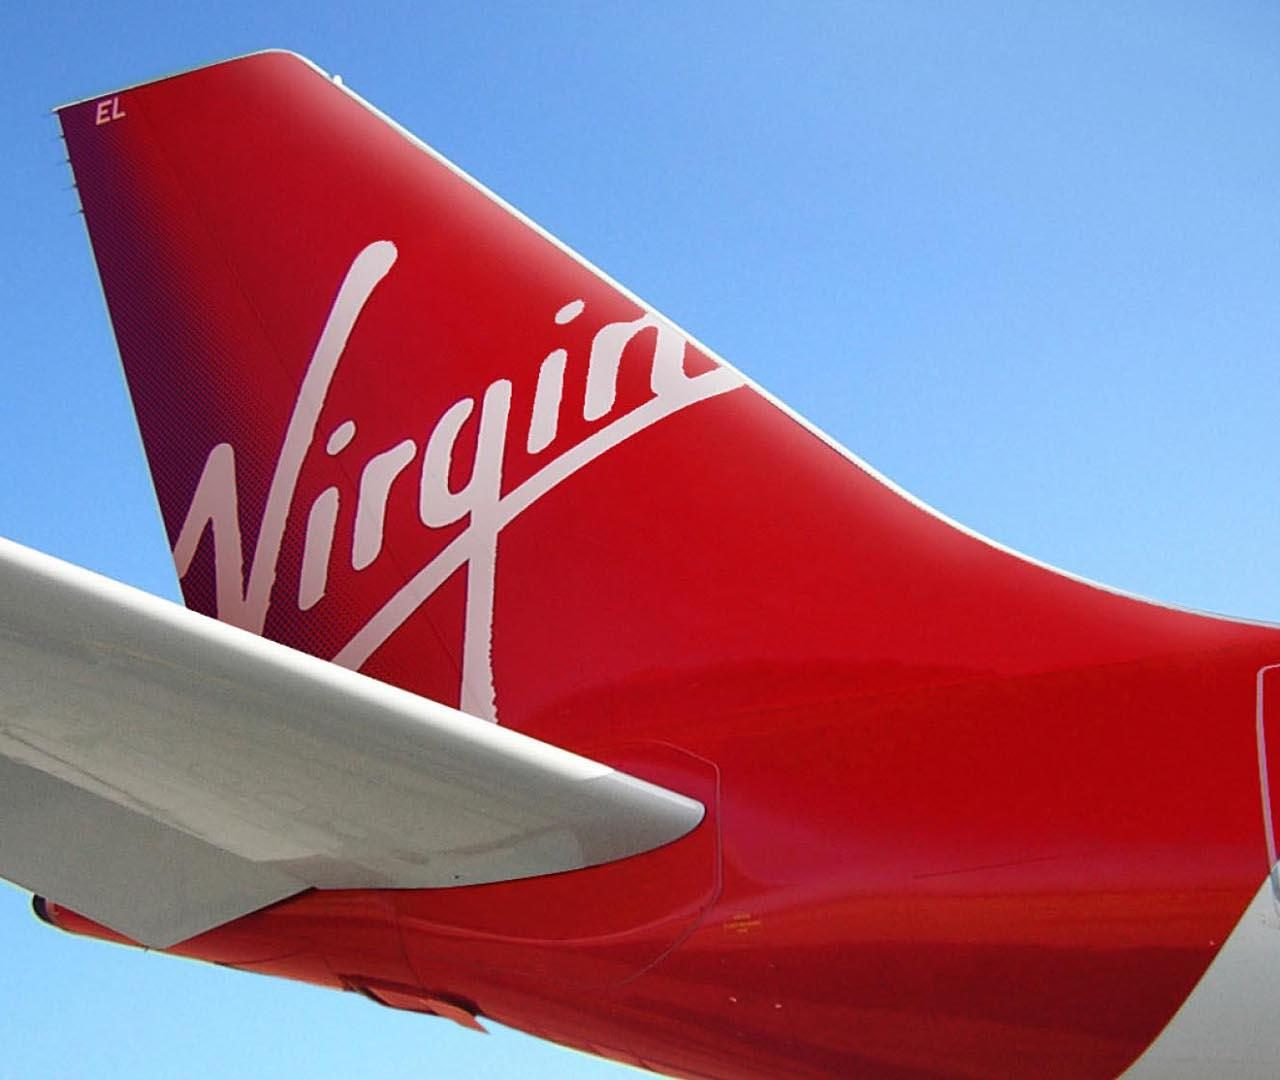 Rear End Of The Virgin Aircraft Wallpaper PaperPull 1280x1080